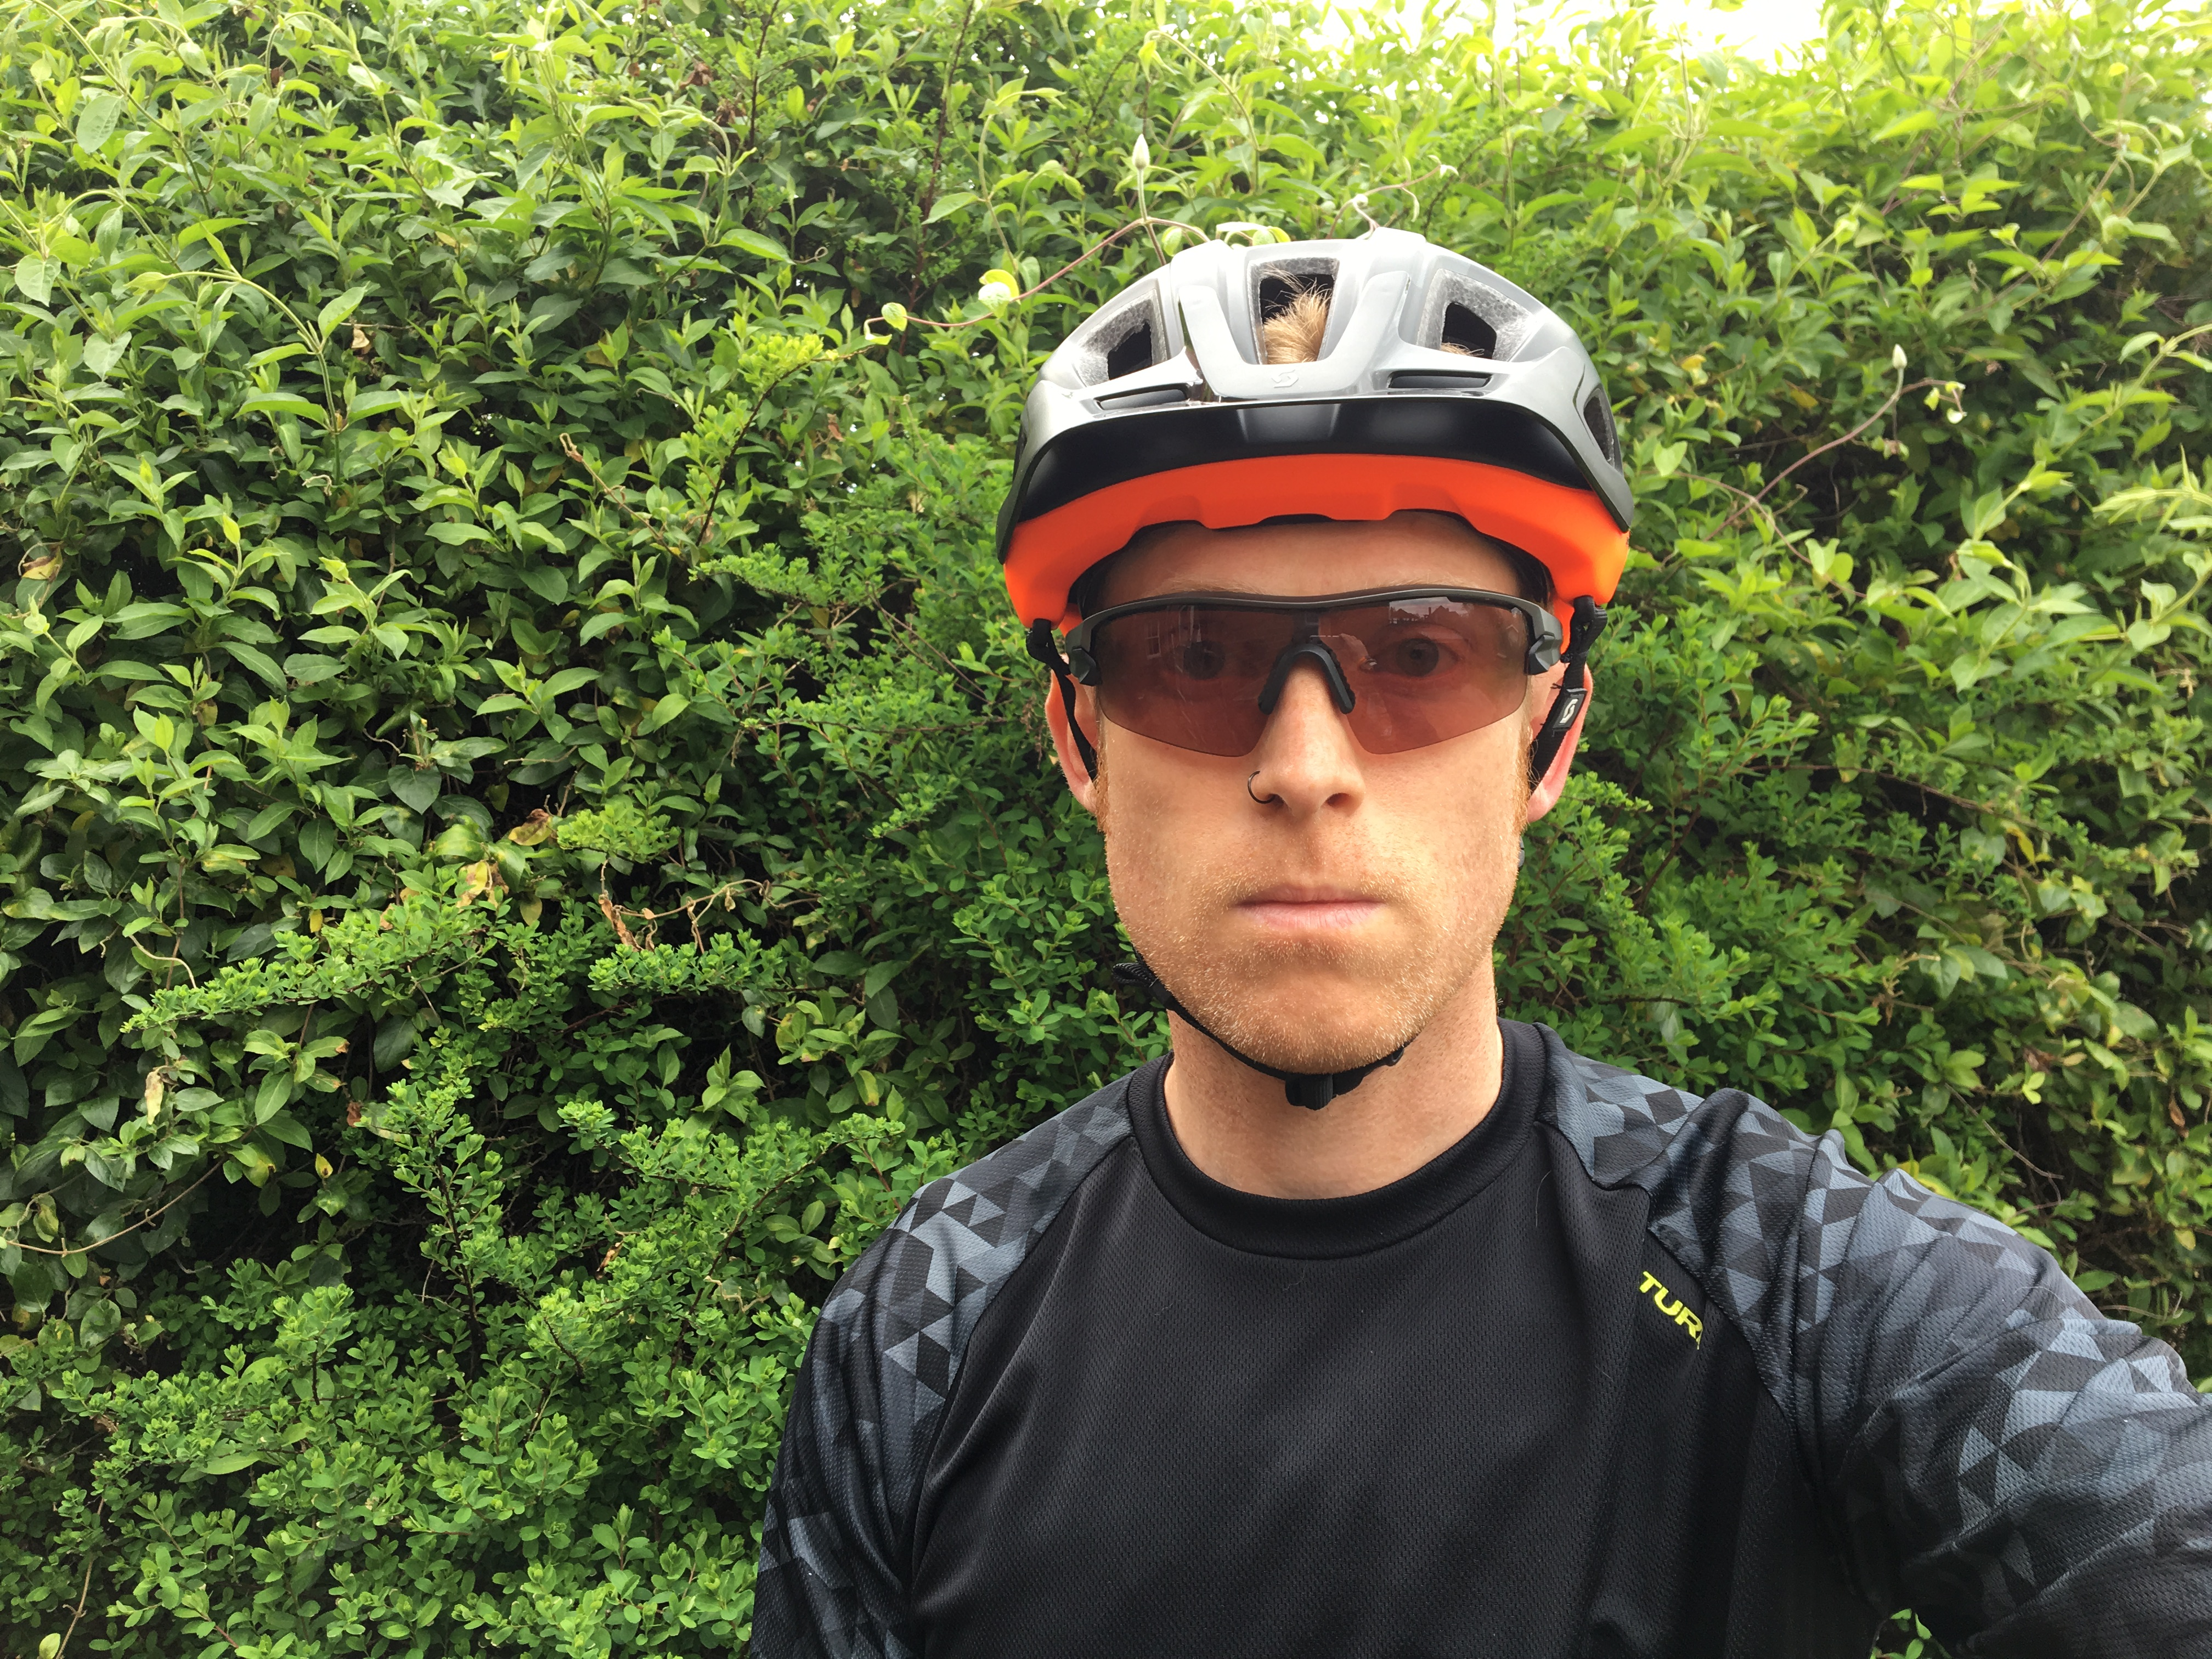 4be76639e66c B Twin Cycling 900 sunglasses review - MBR